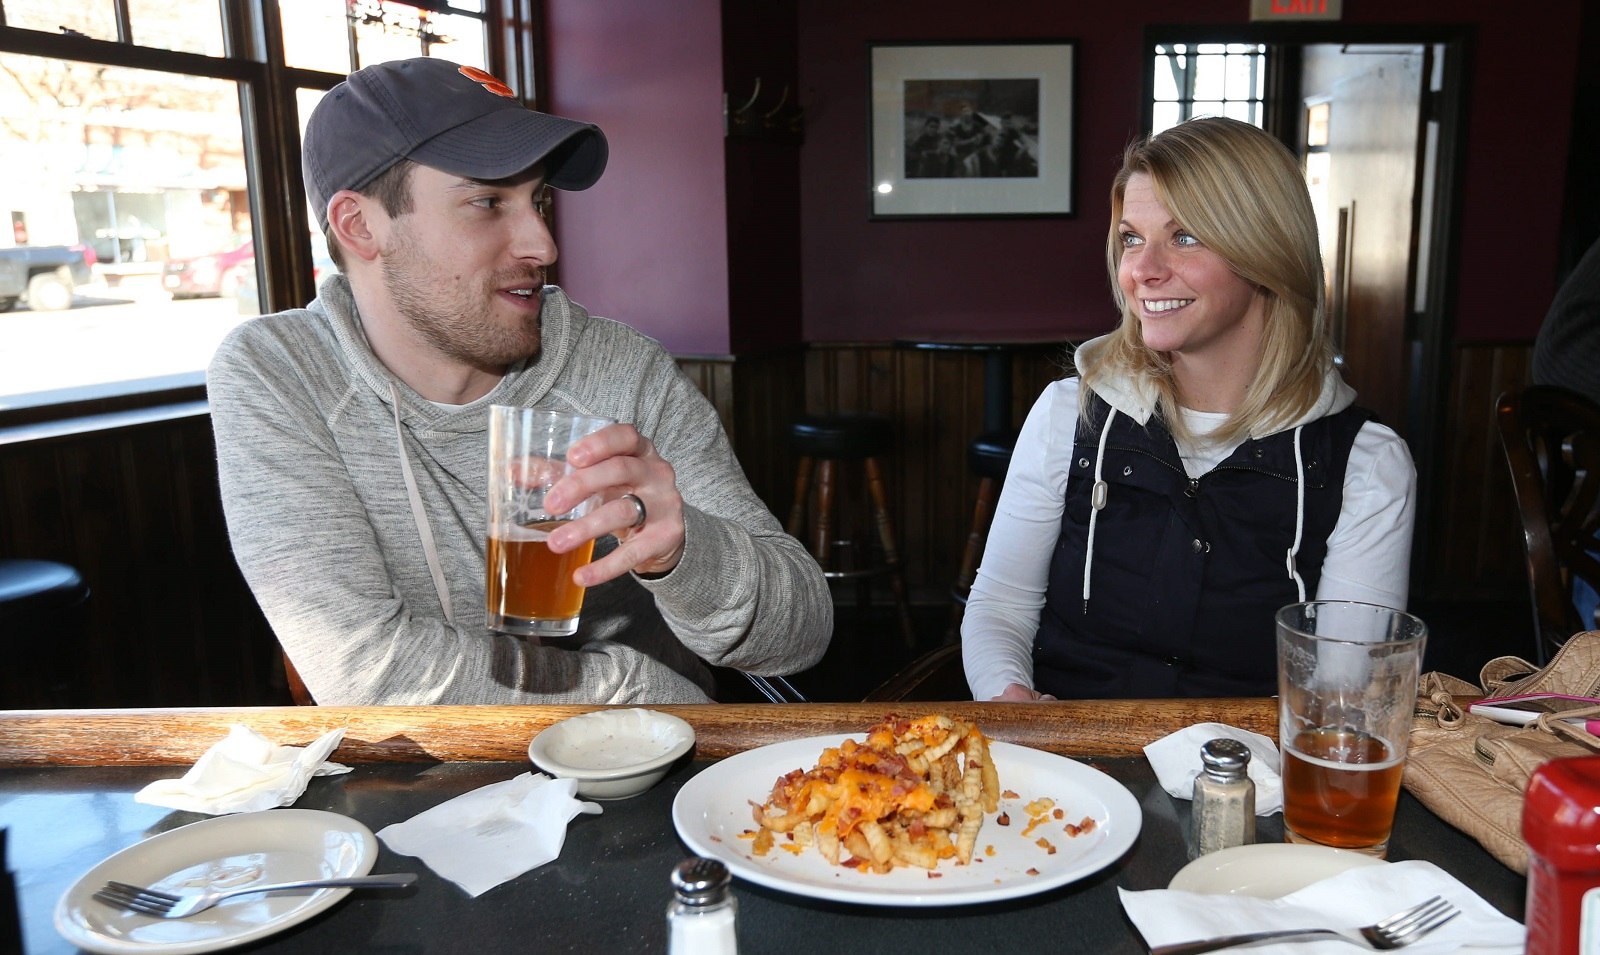 Loughran's is at 4543 Main St. in Snyder. Steve and Amanda Glick of the Town of Tonawanda get some time out. (Sharon Cantillon/Buffalo News)